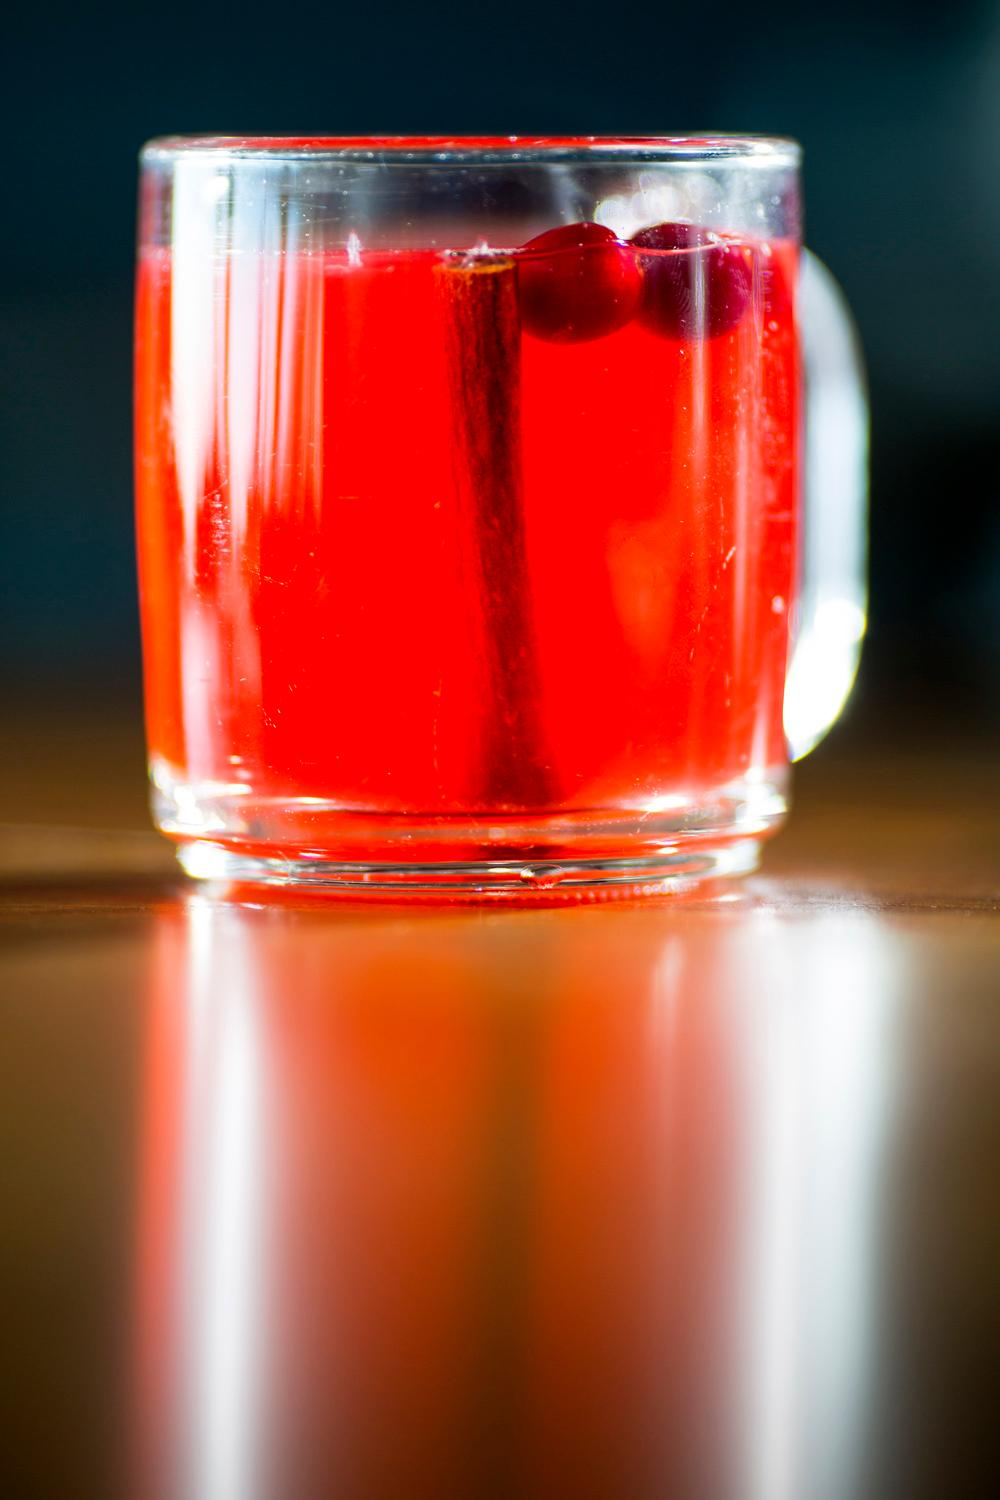 The Cran-Apple hot toddy features the organic cranberries from the local farm at the Salt Hotel and Pub, located at 147 Howerton Ave, Ilwaco, WA. (Sy Bean / Seattle Refined)(Sy Bean / Seattle Refined)